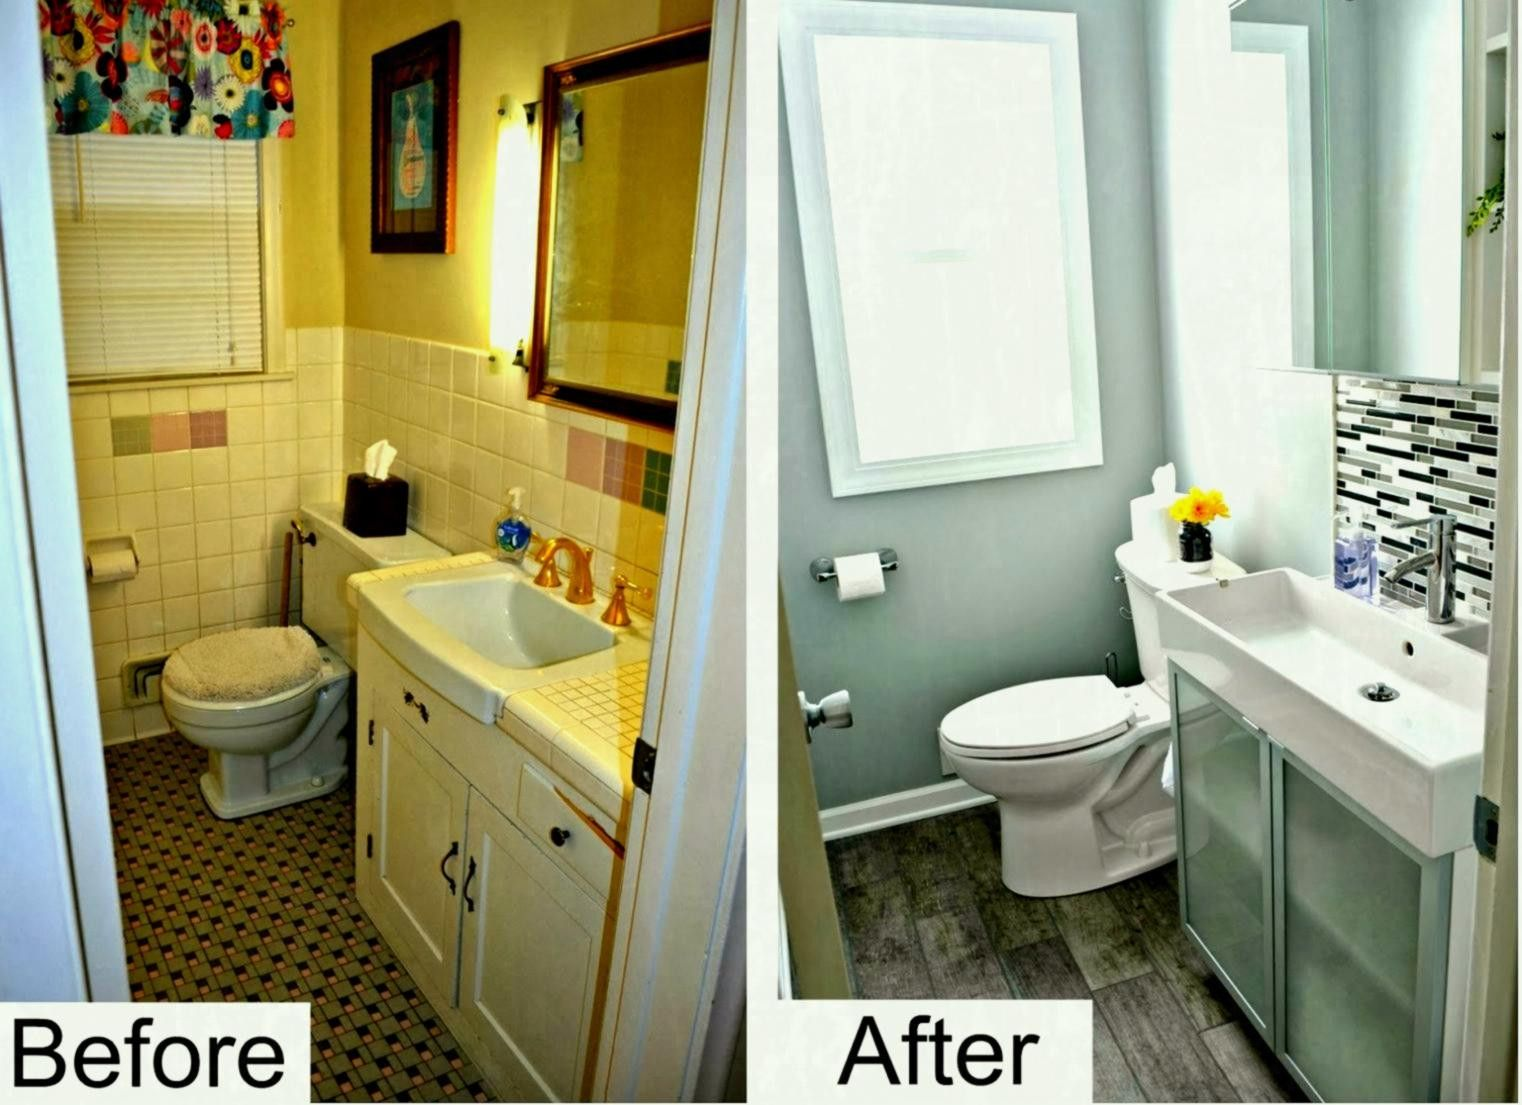 Average Cost Of Bathroom Remodel Diy Bathroom Remodel Cost Ideas For | Small Bathroom Renovations, Cheap Bathroom Remodel, Budget Bathroom Remodel